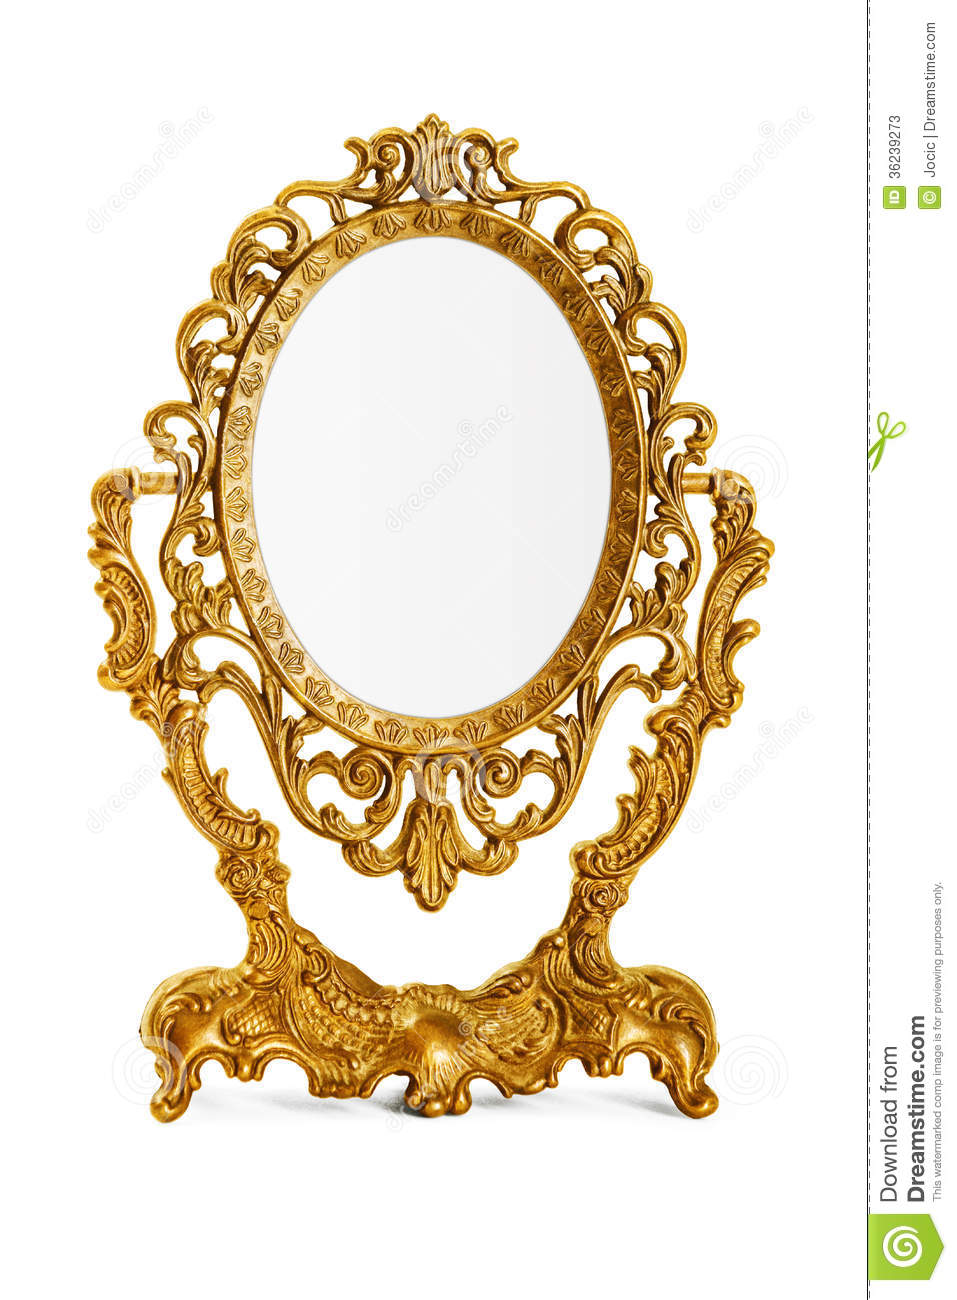 Golden antique mirror on white background, clipping path included.